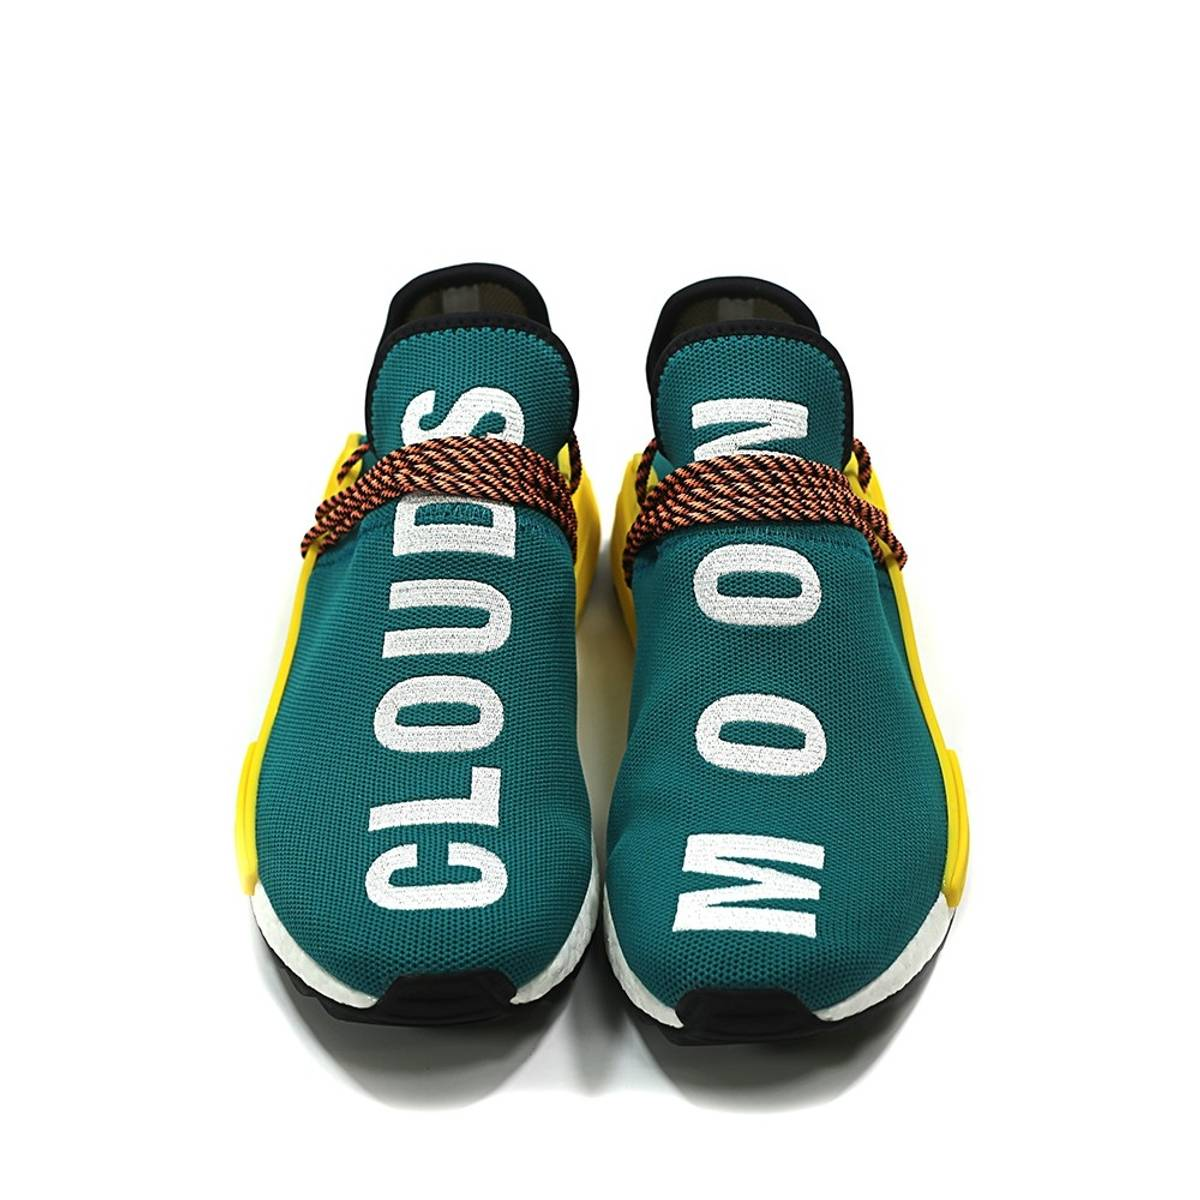 45825889185ea Adidas HU NMD TR Moon Clouds Human Race Size 6.5 - Low-Top Sneakers ...